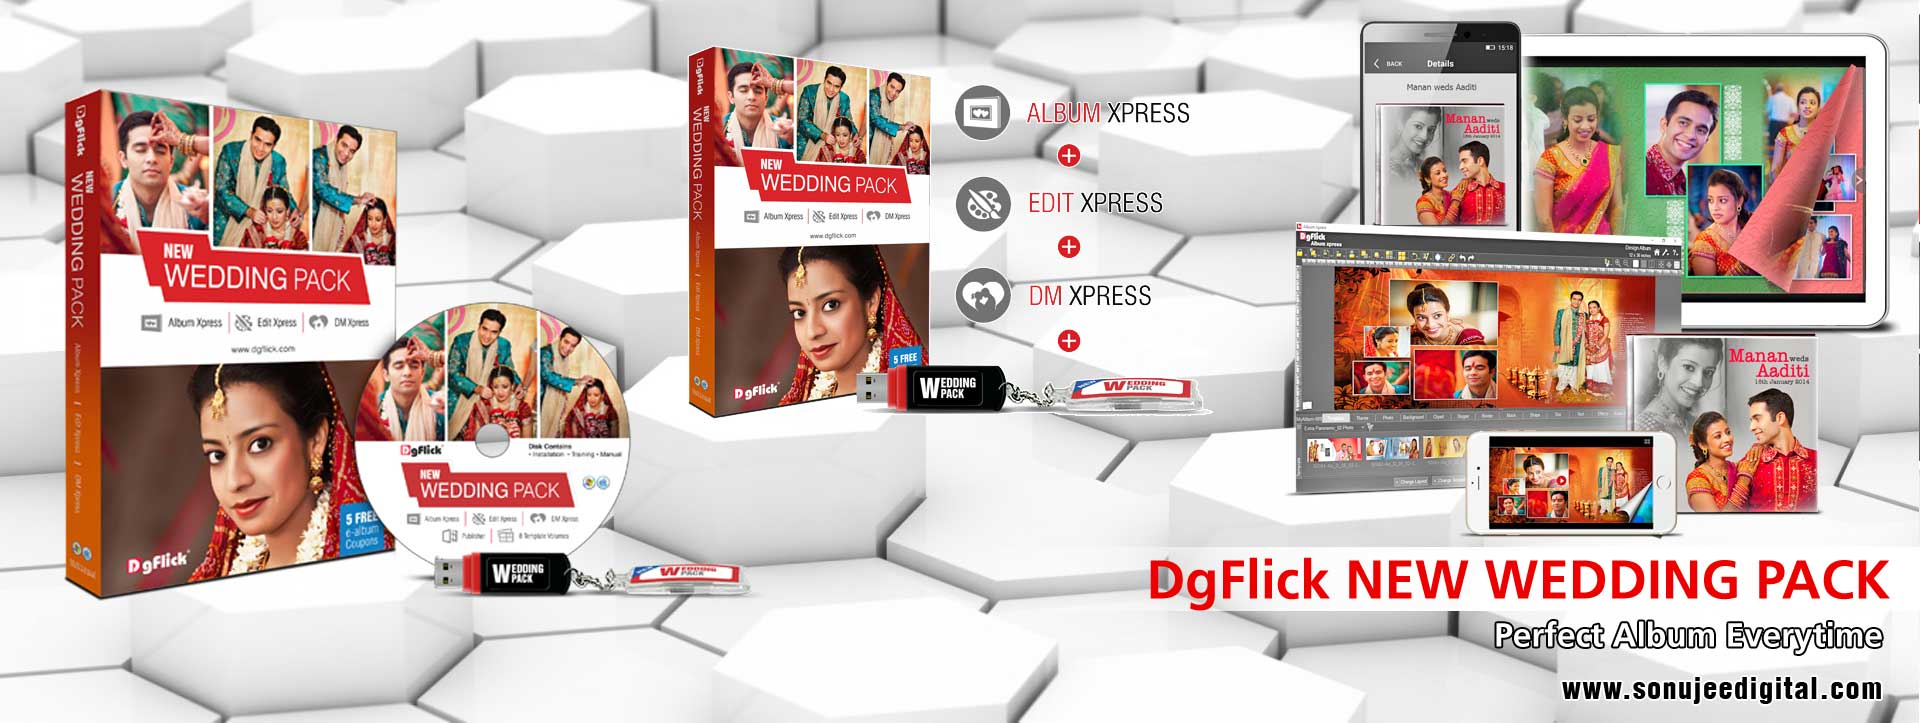 DgFlick New Wedding Pack